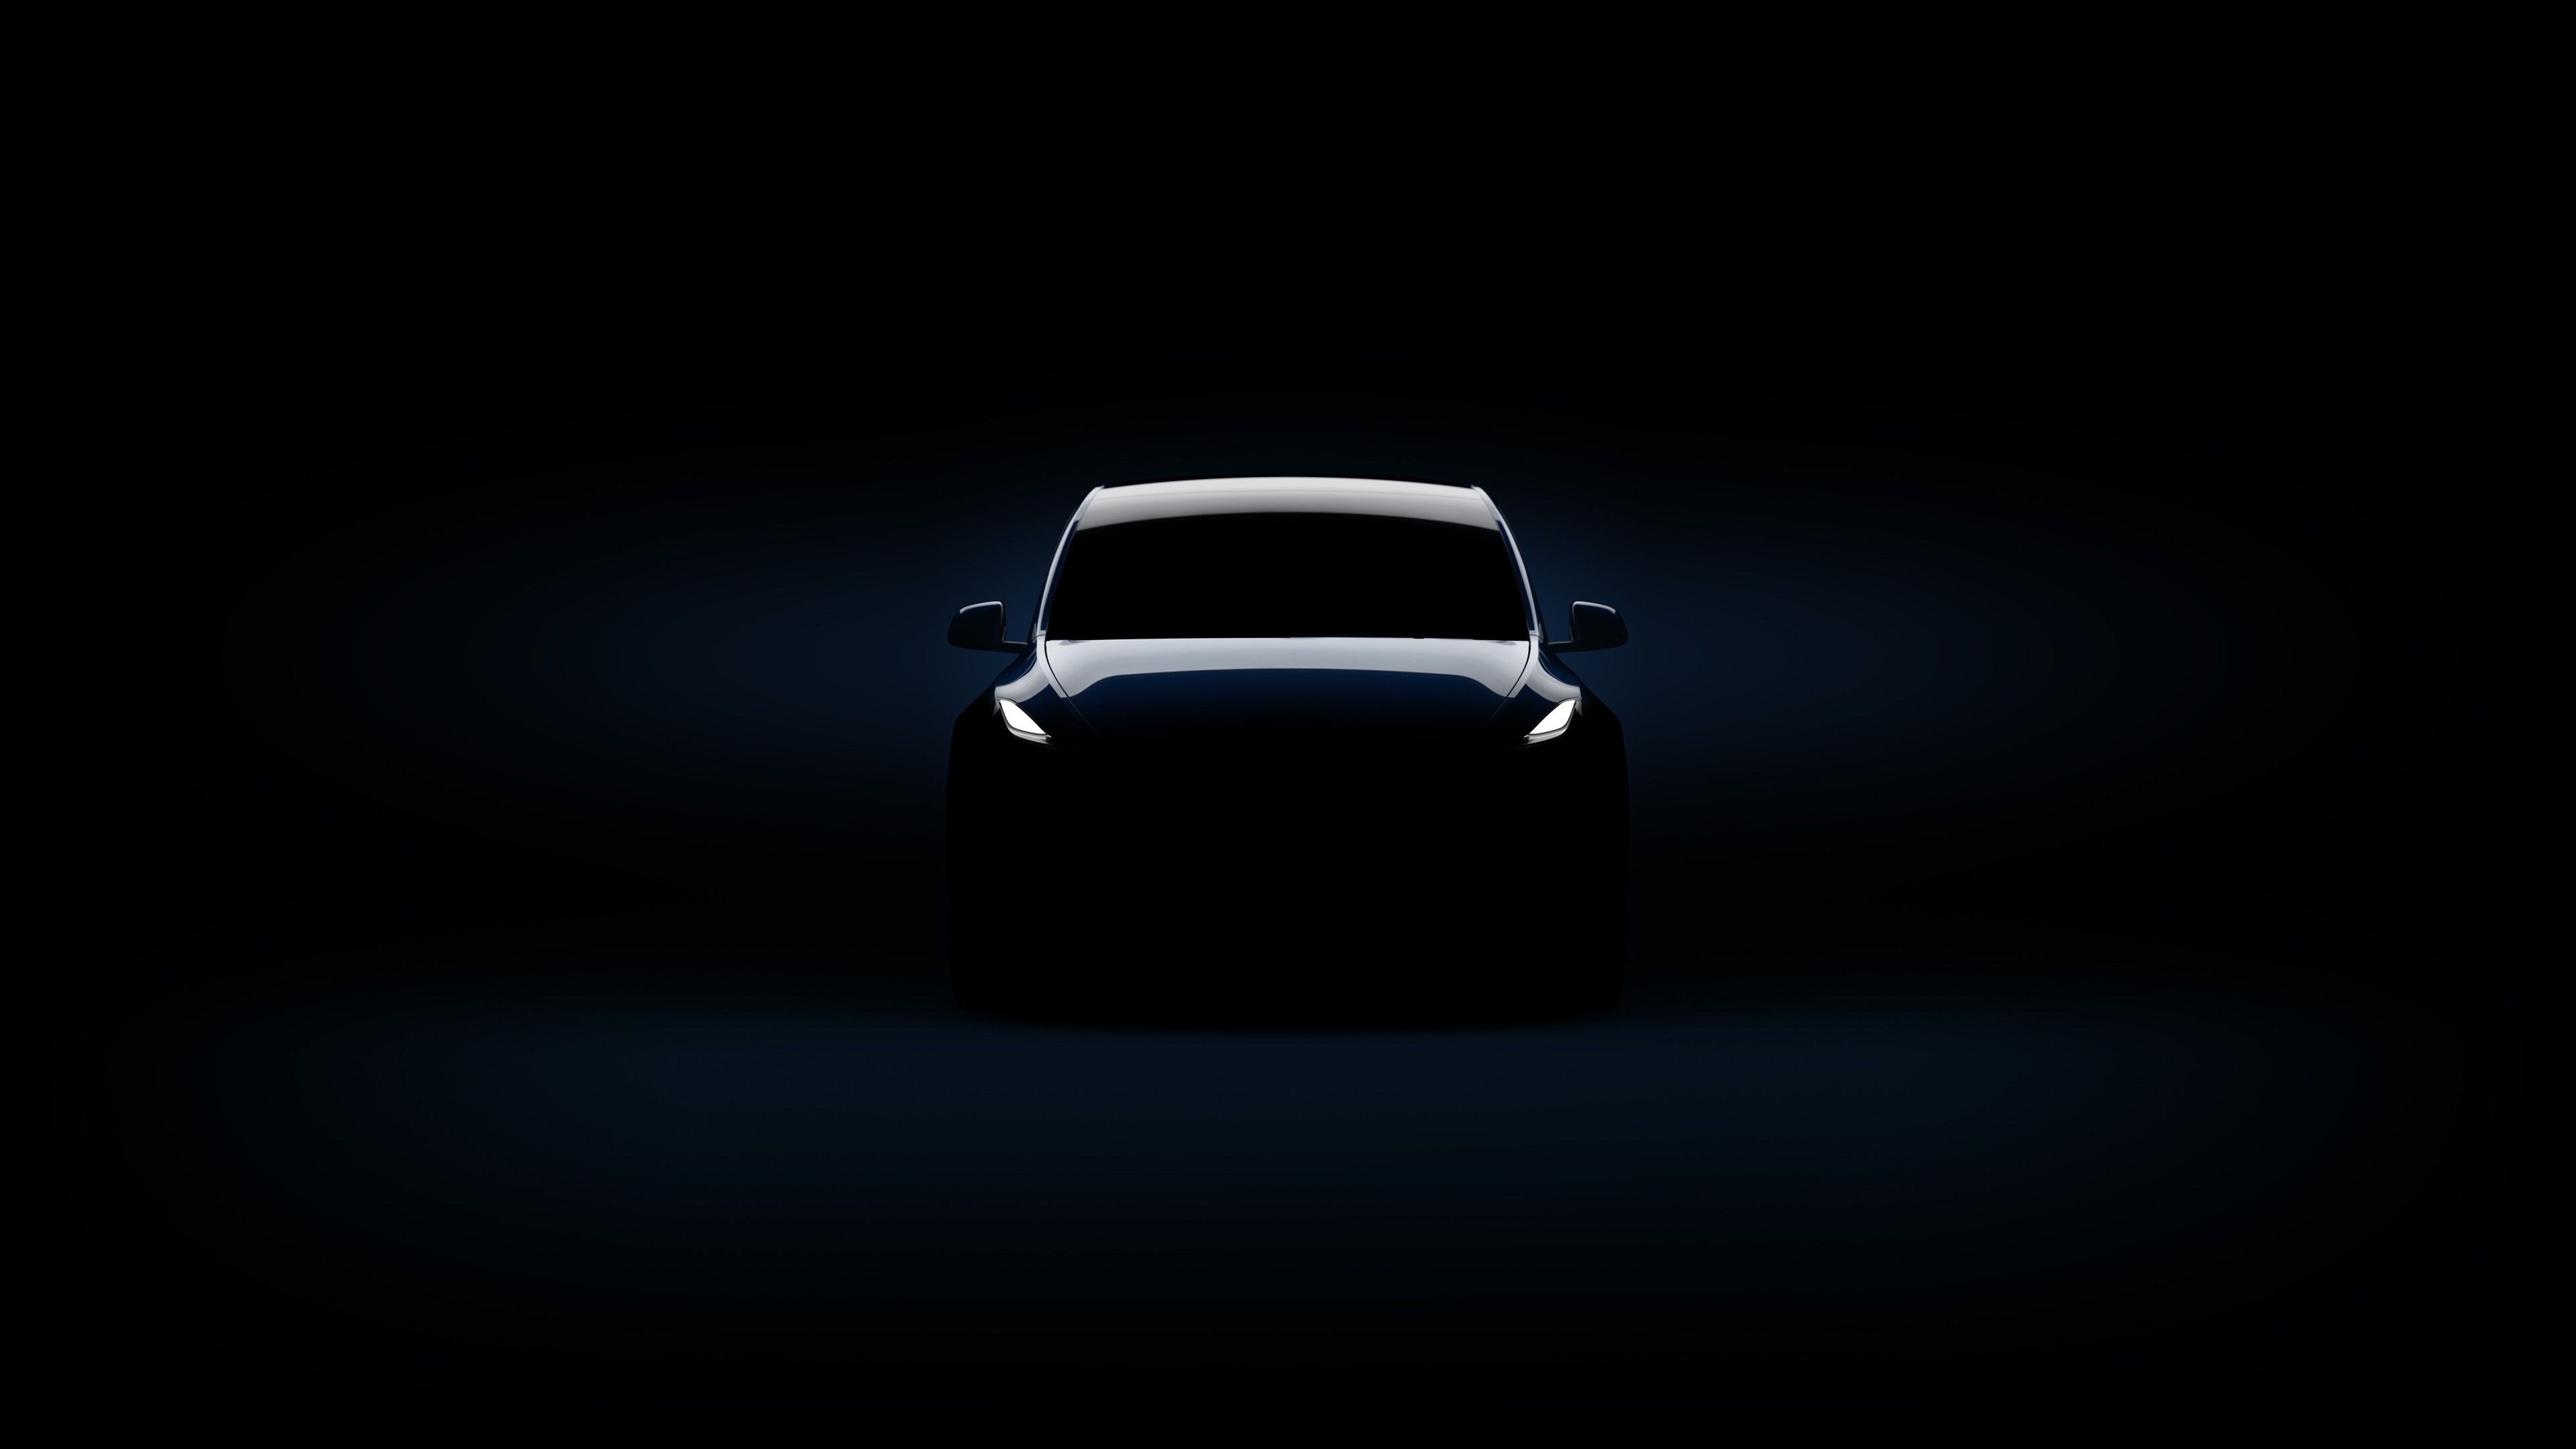 2019 Tesla Model Y 4k Tesla Wallpapers Tesla Model Y Wallpapers Hd Wallpapers Cars Wallpapers 4k Wallpapers 2019 Cars Wal Tesla Model Tesla Car Wallpapers